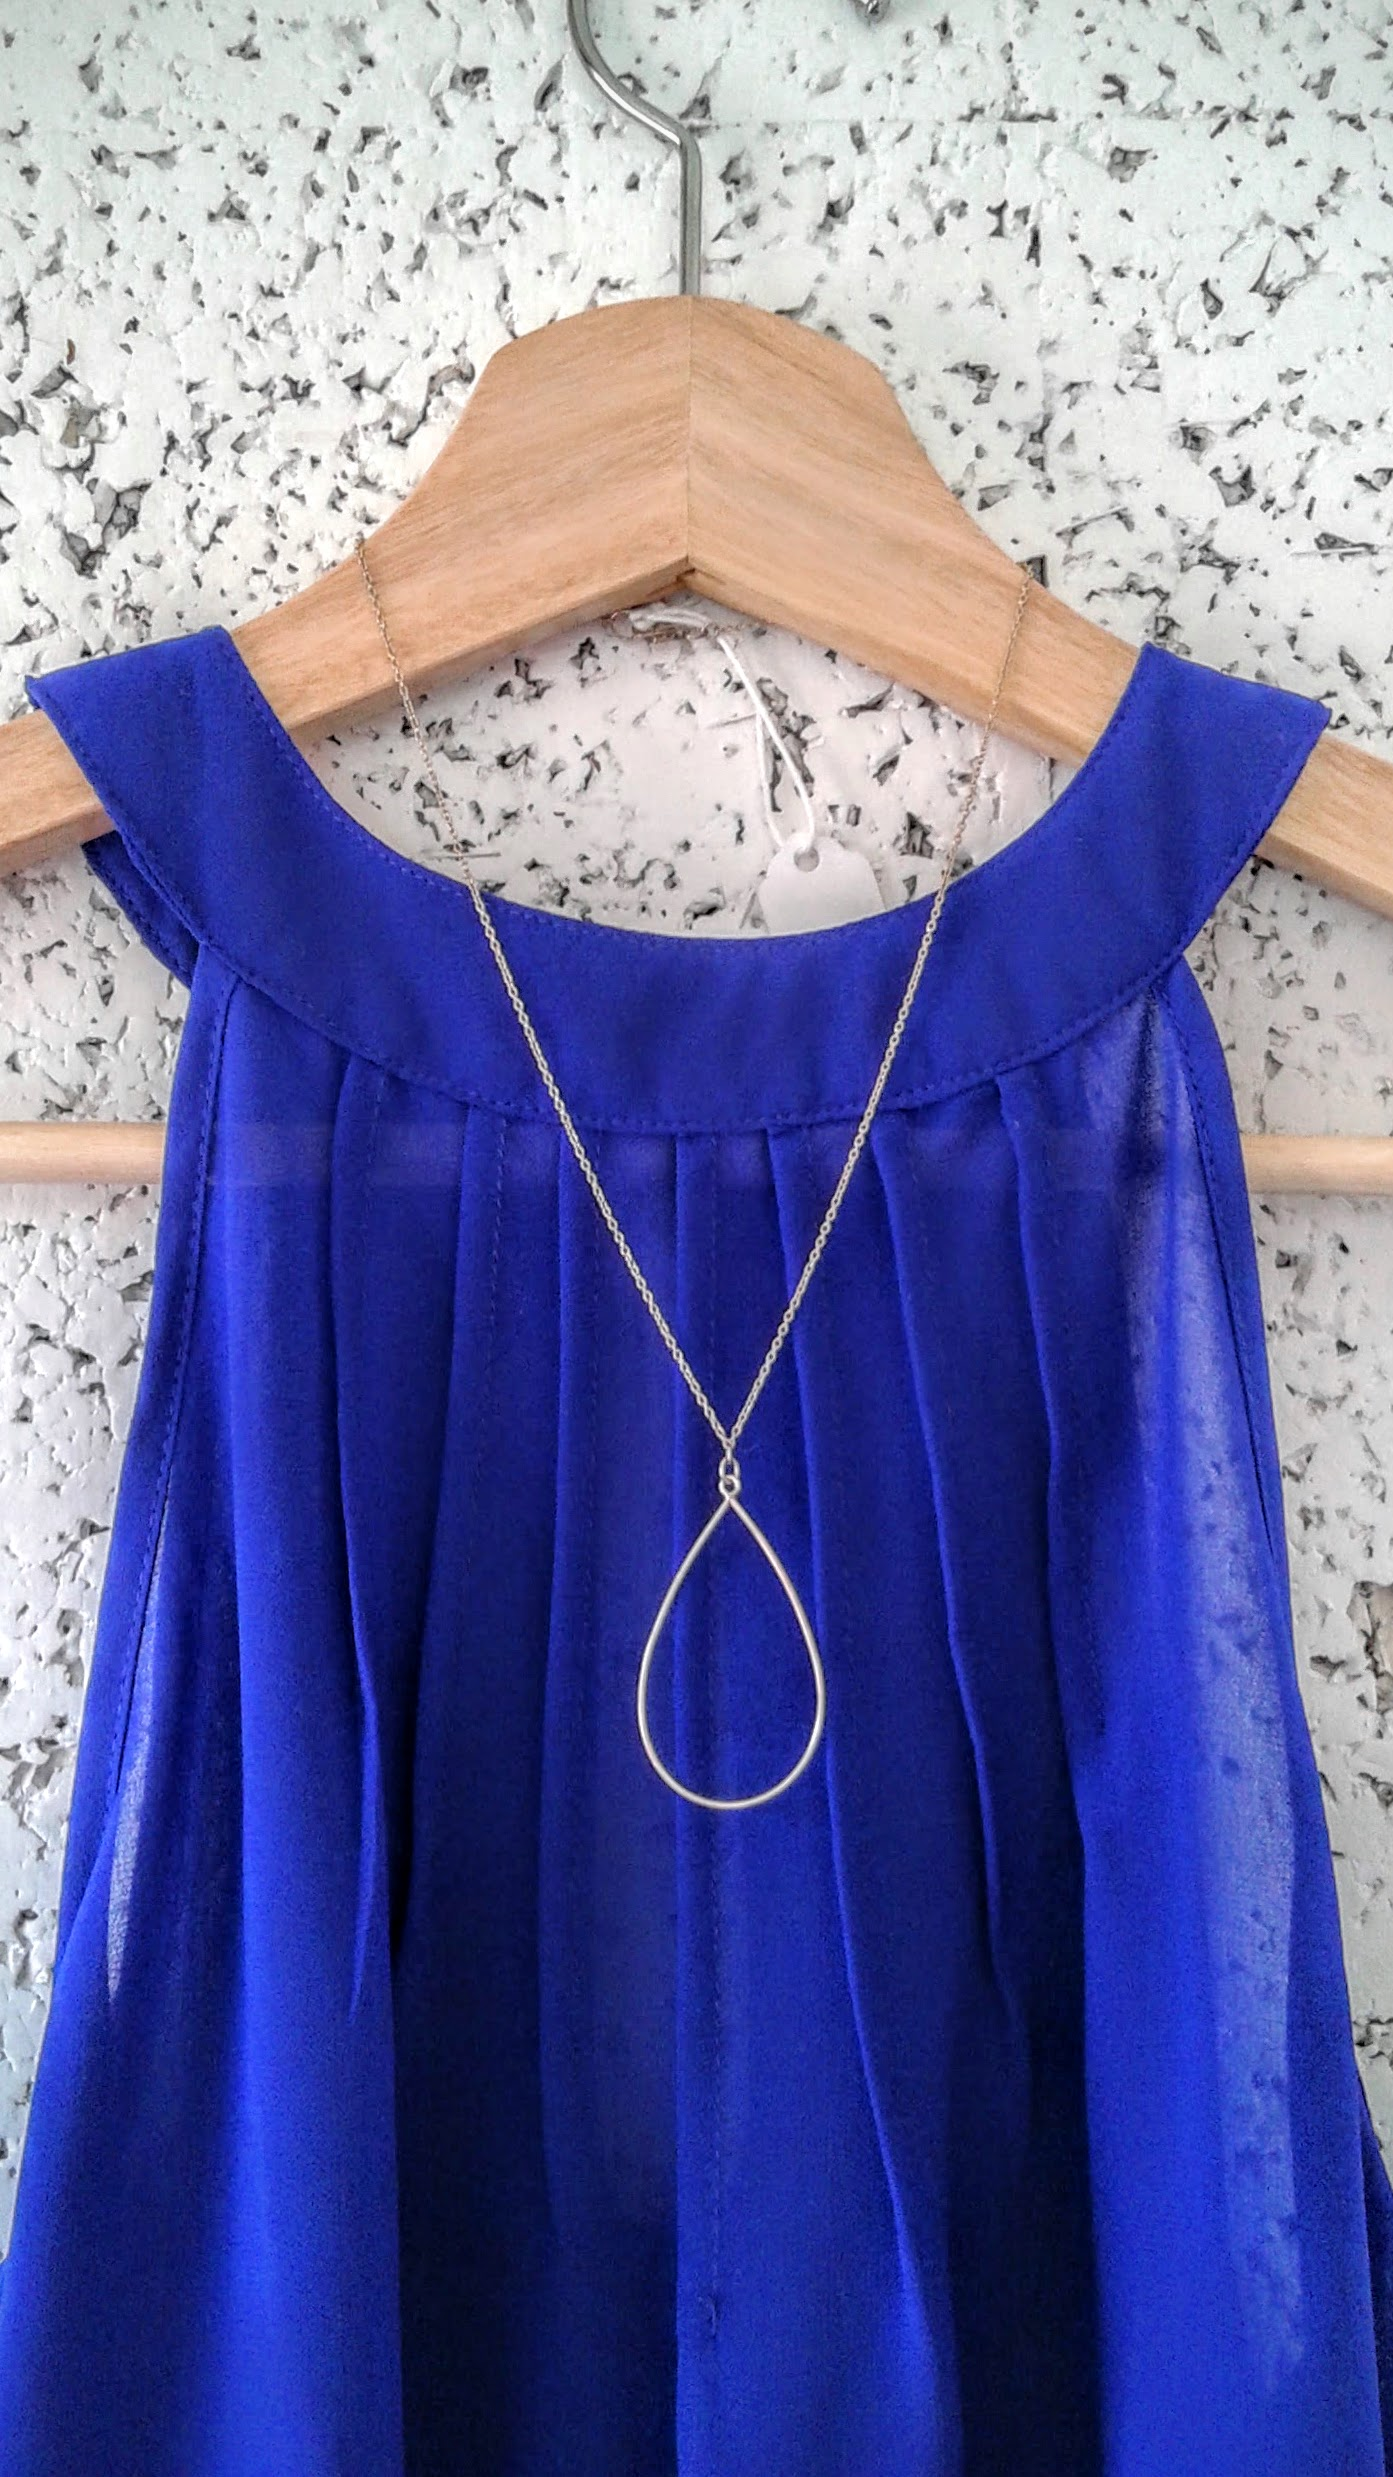 Hilary Druxman necklace, $18; Lola top, Size S, $16